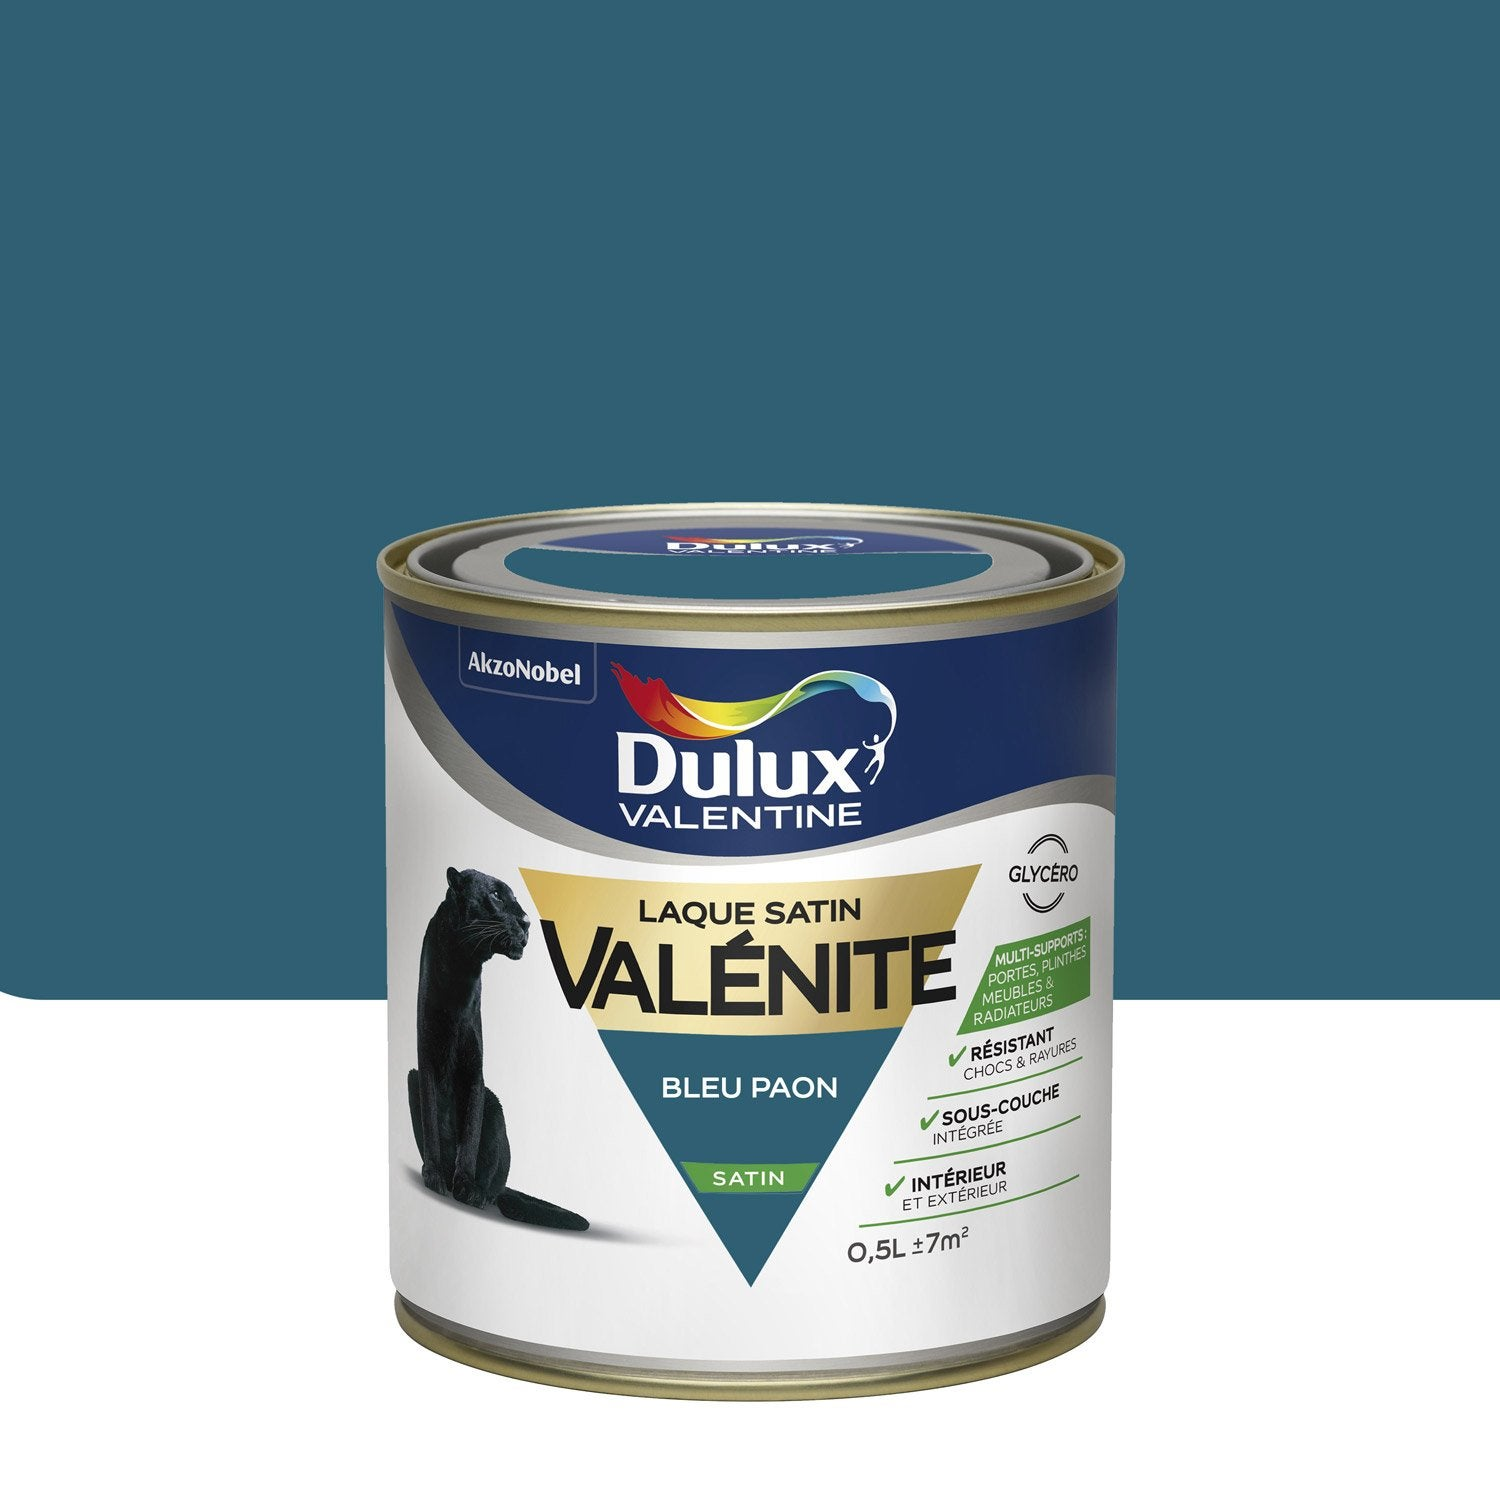 peinture boiserie val nite dulux valentine bleu paon 0 5. Black Bedroom Furniture Sets. Home Design Ideas